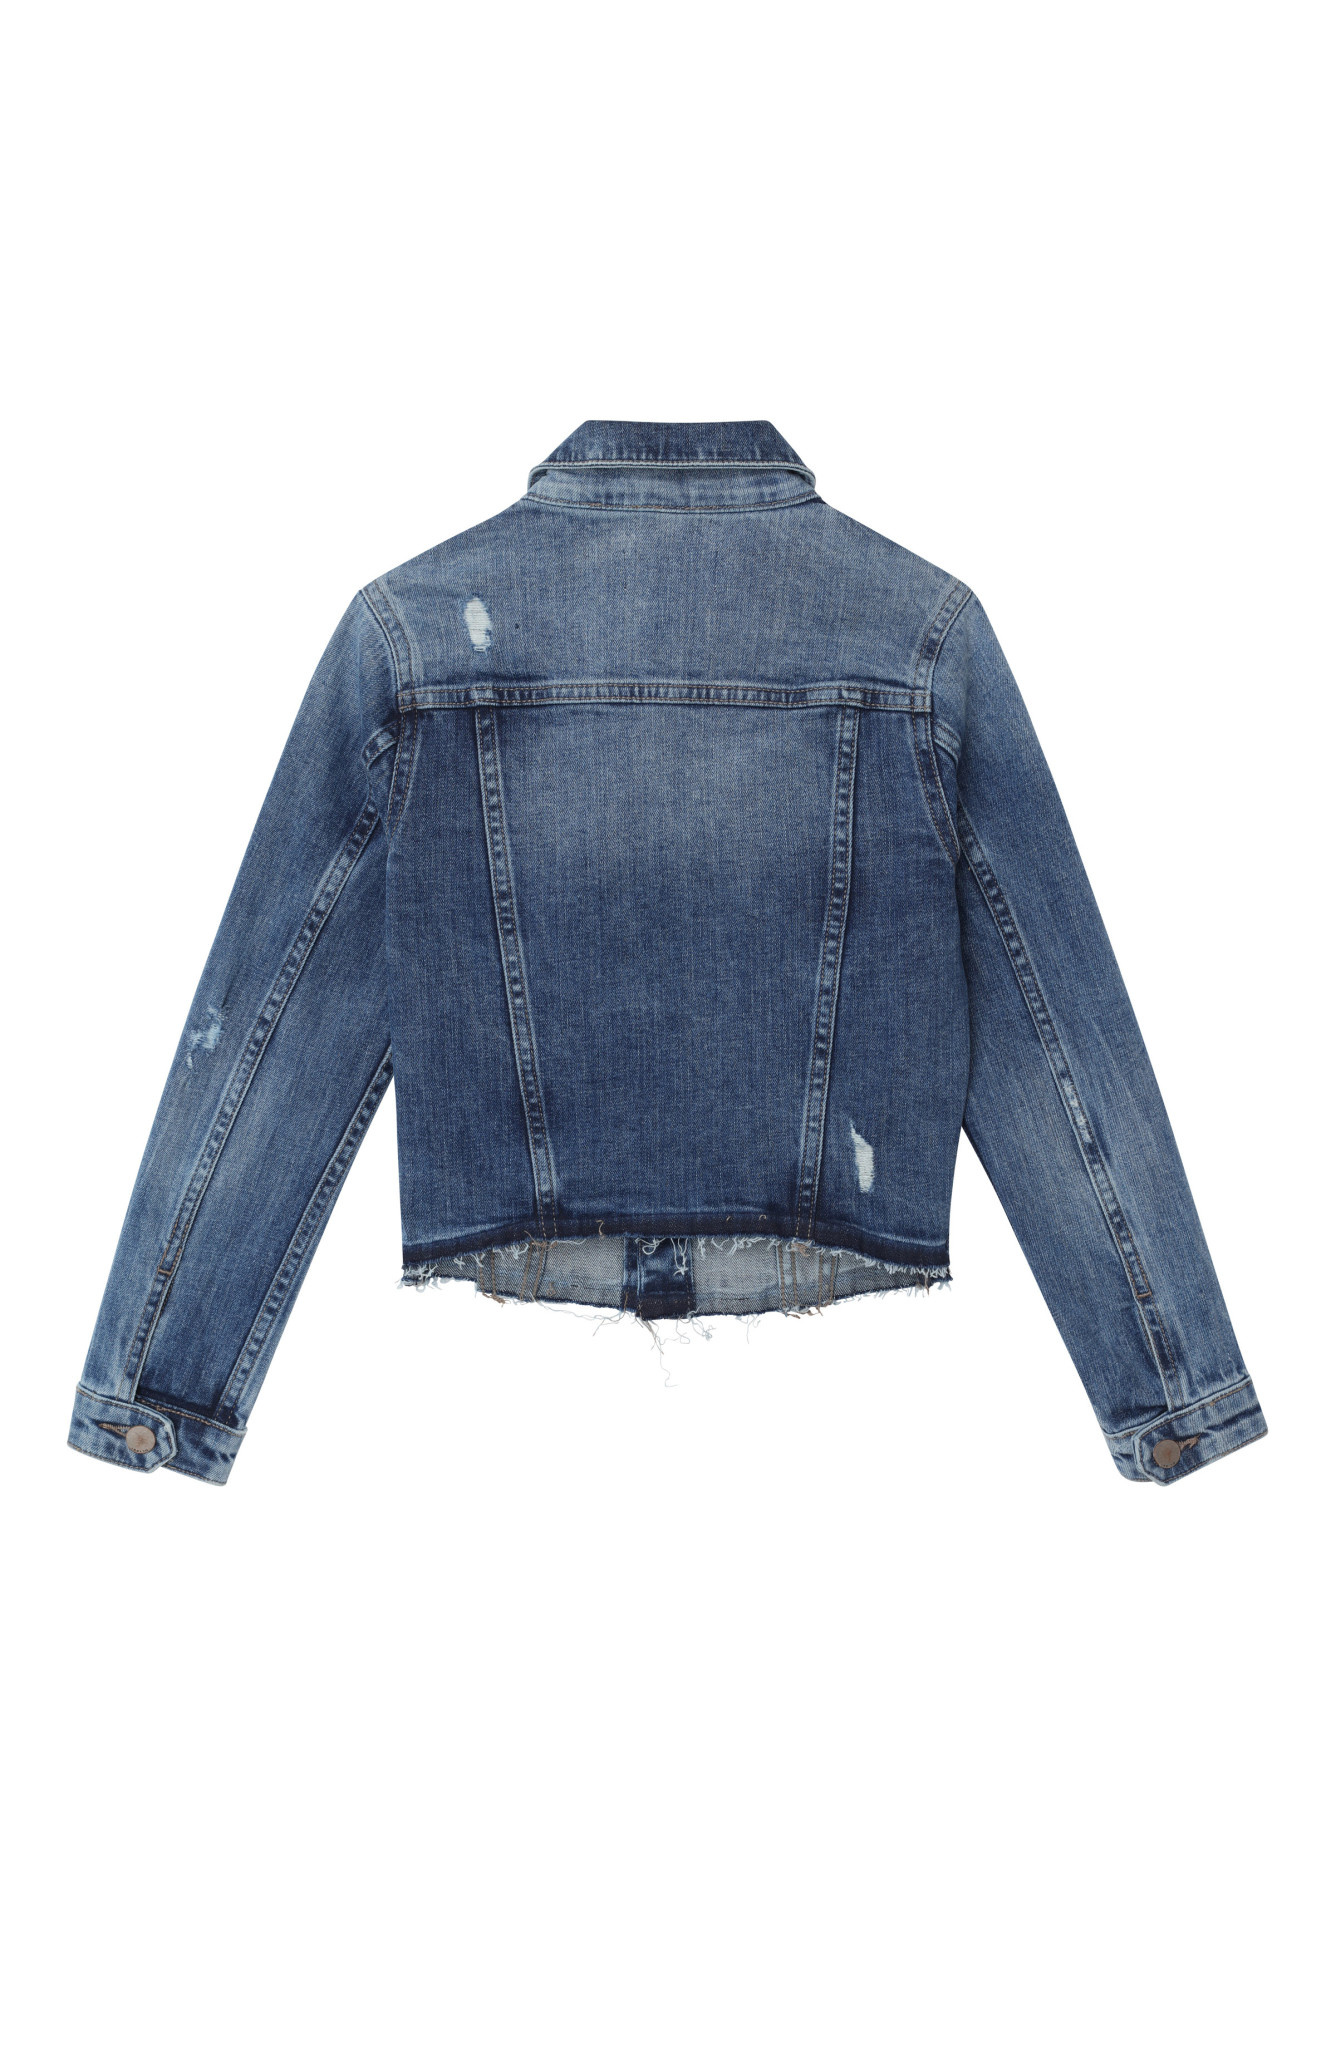 DL1961 Denim Manning Teen Jacket - Cloud